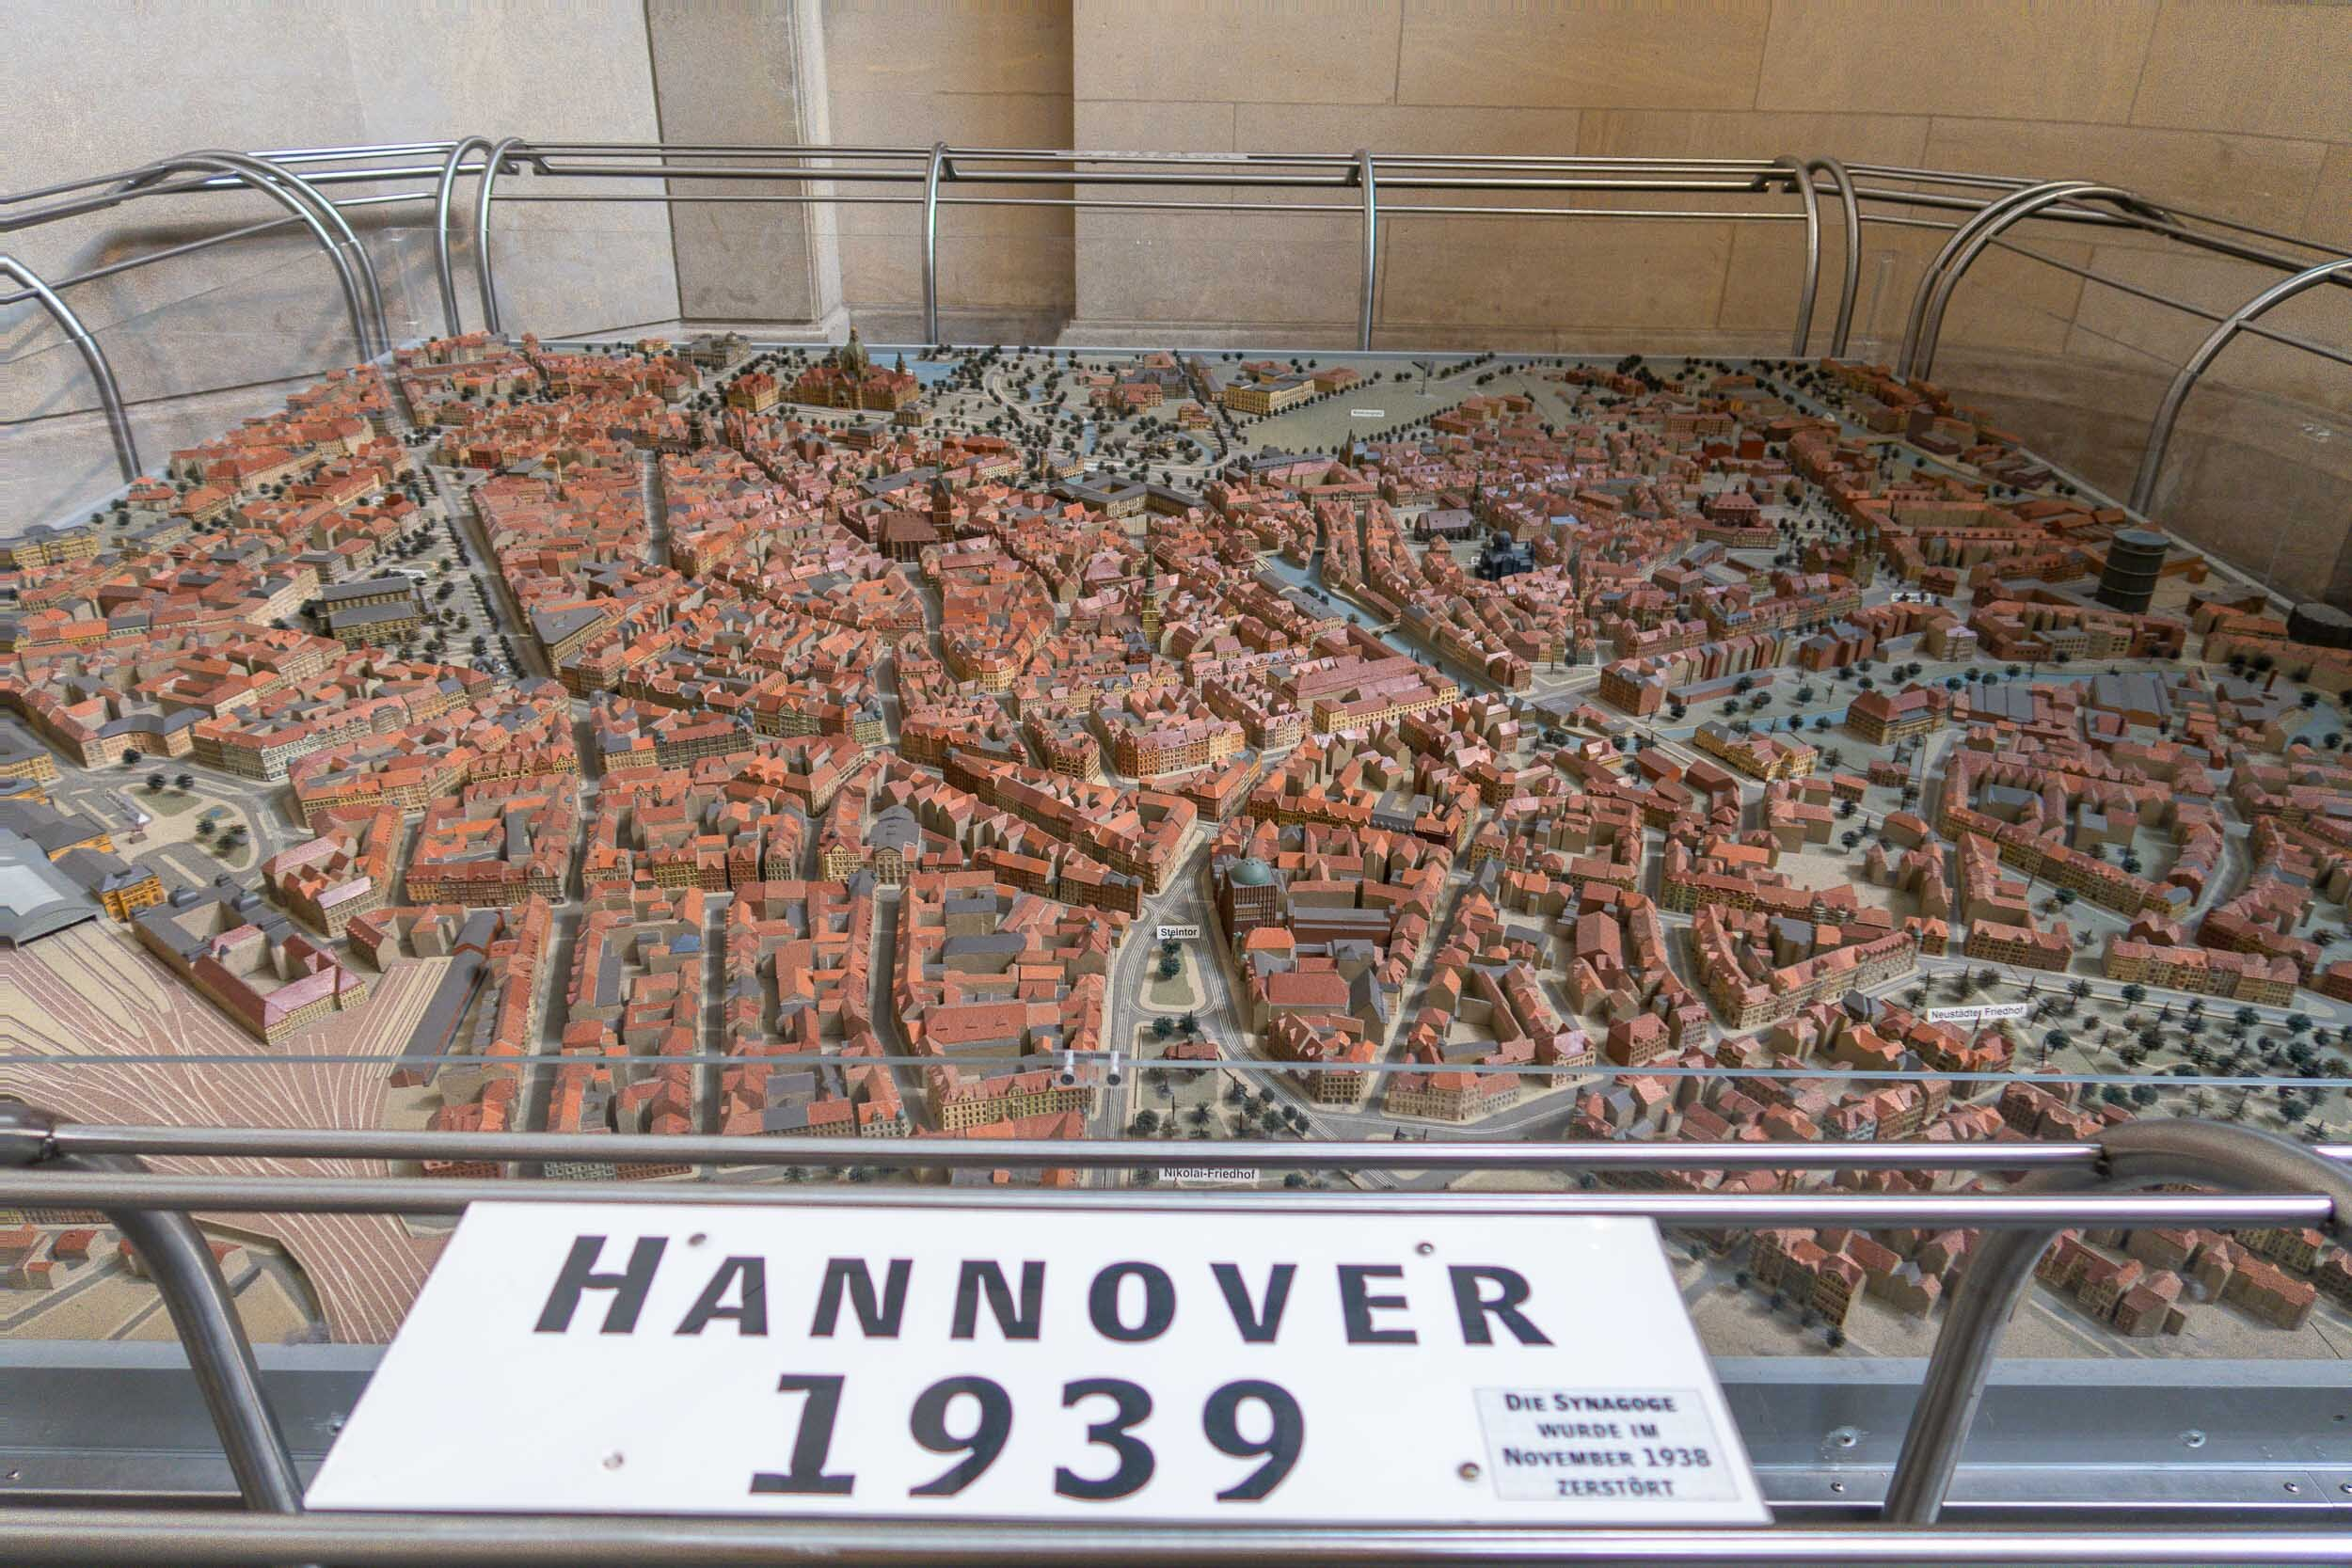 Tiny model of the City of Hannover, Germany over the years